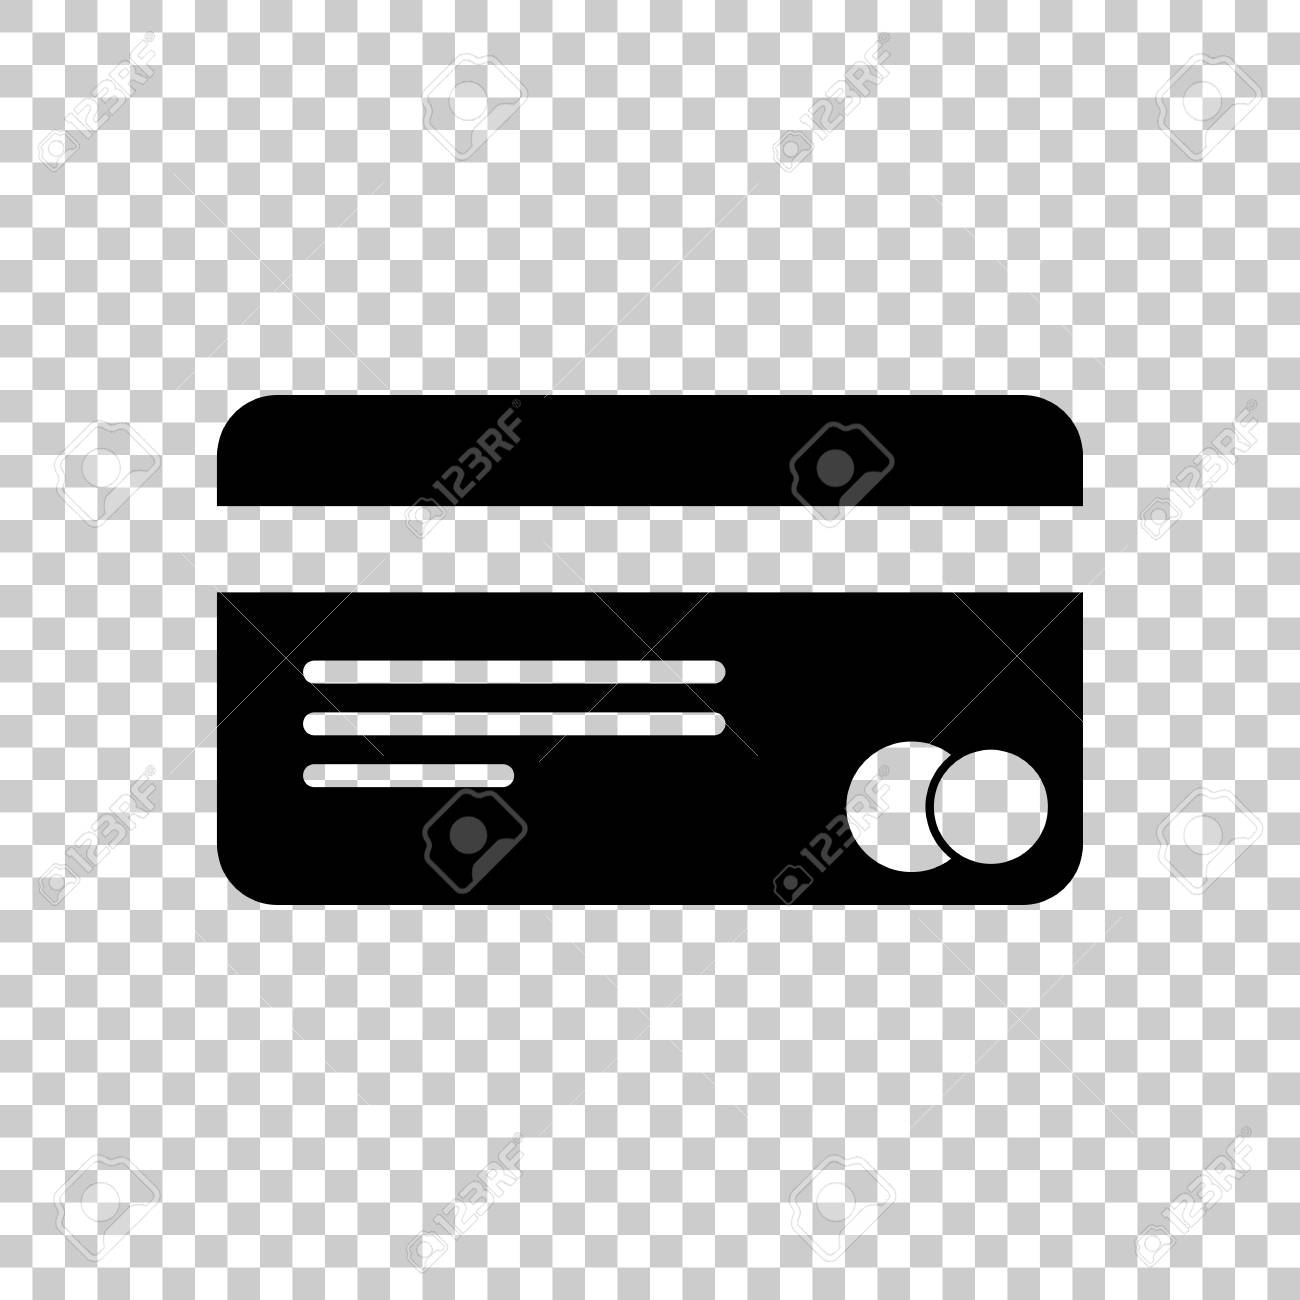 plastic credit card icon black icon on transparent background